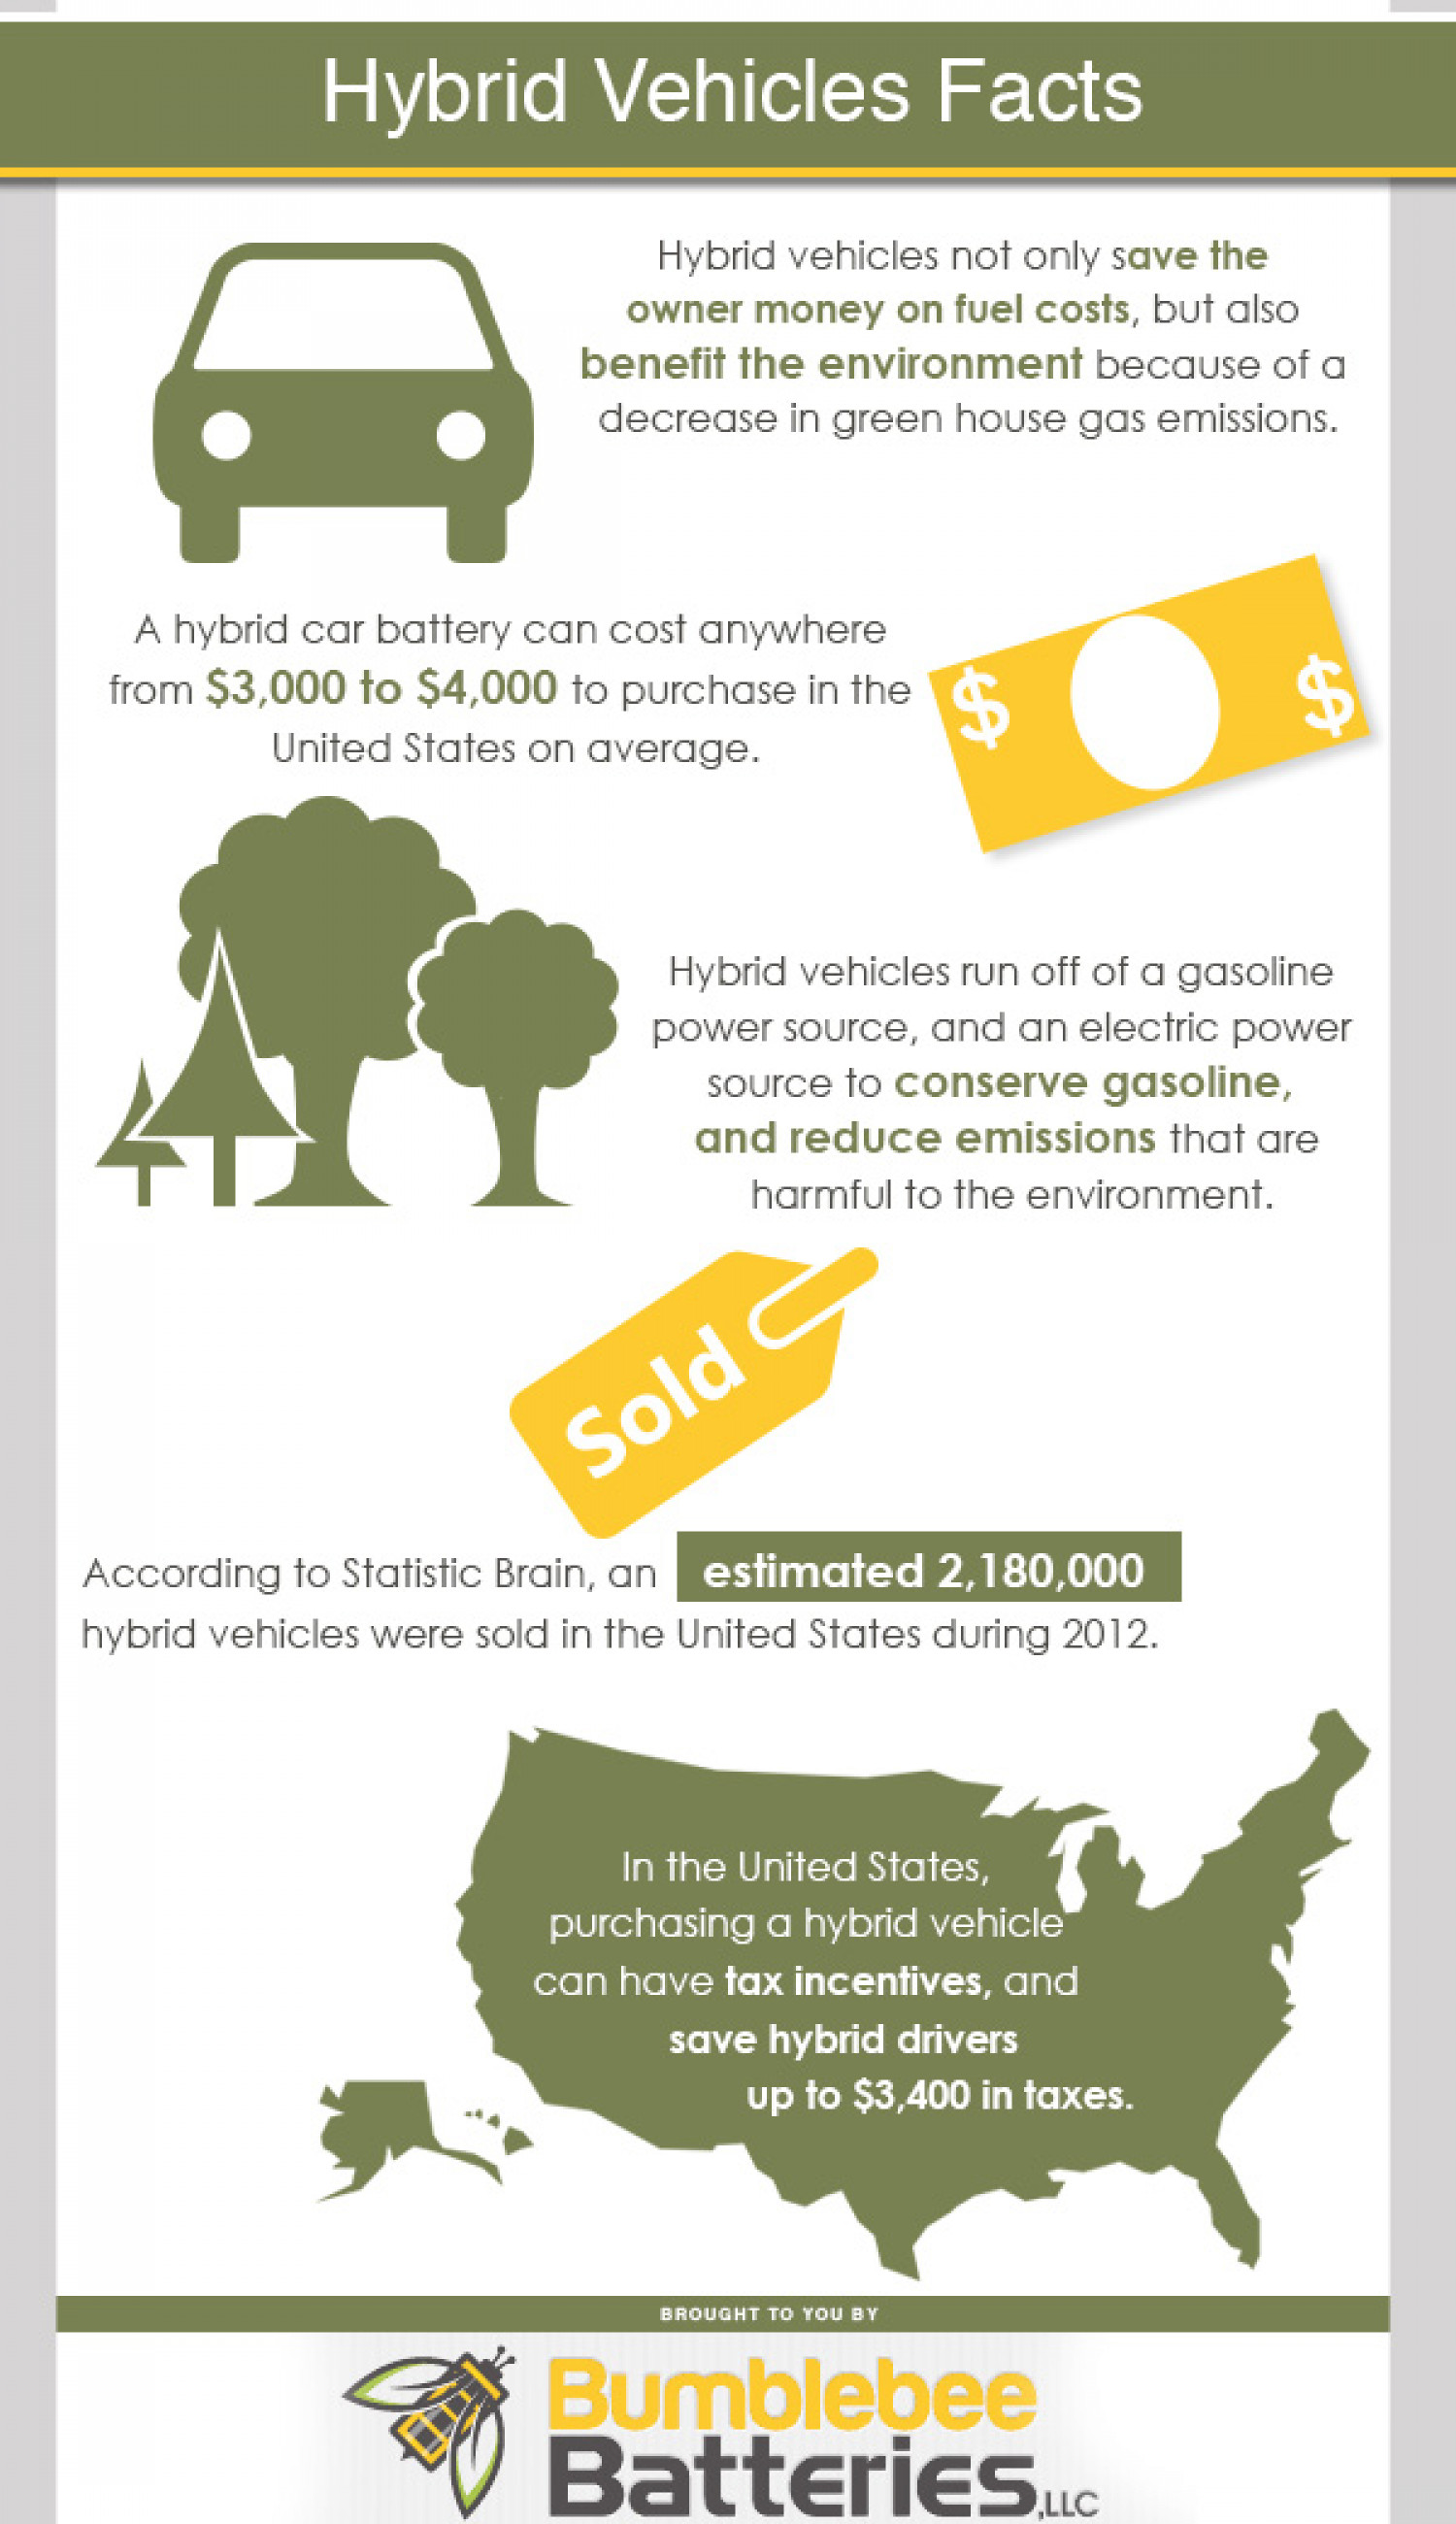 Hybrid Vehicles Facts Infographic